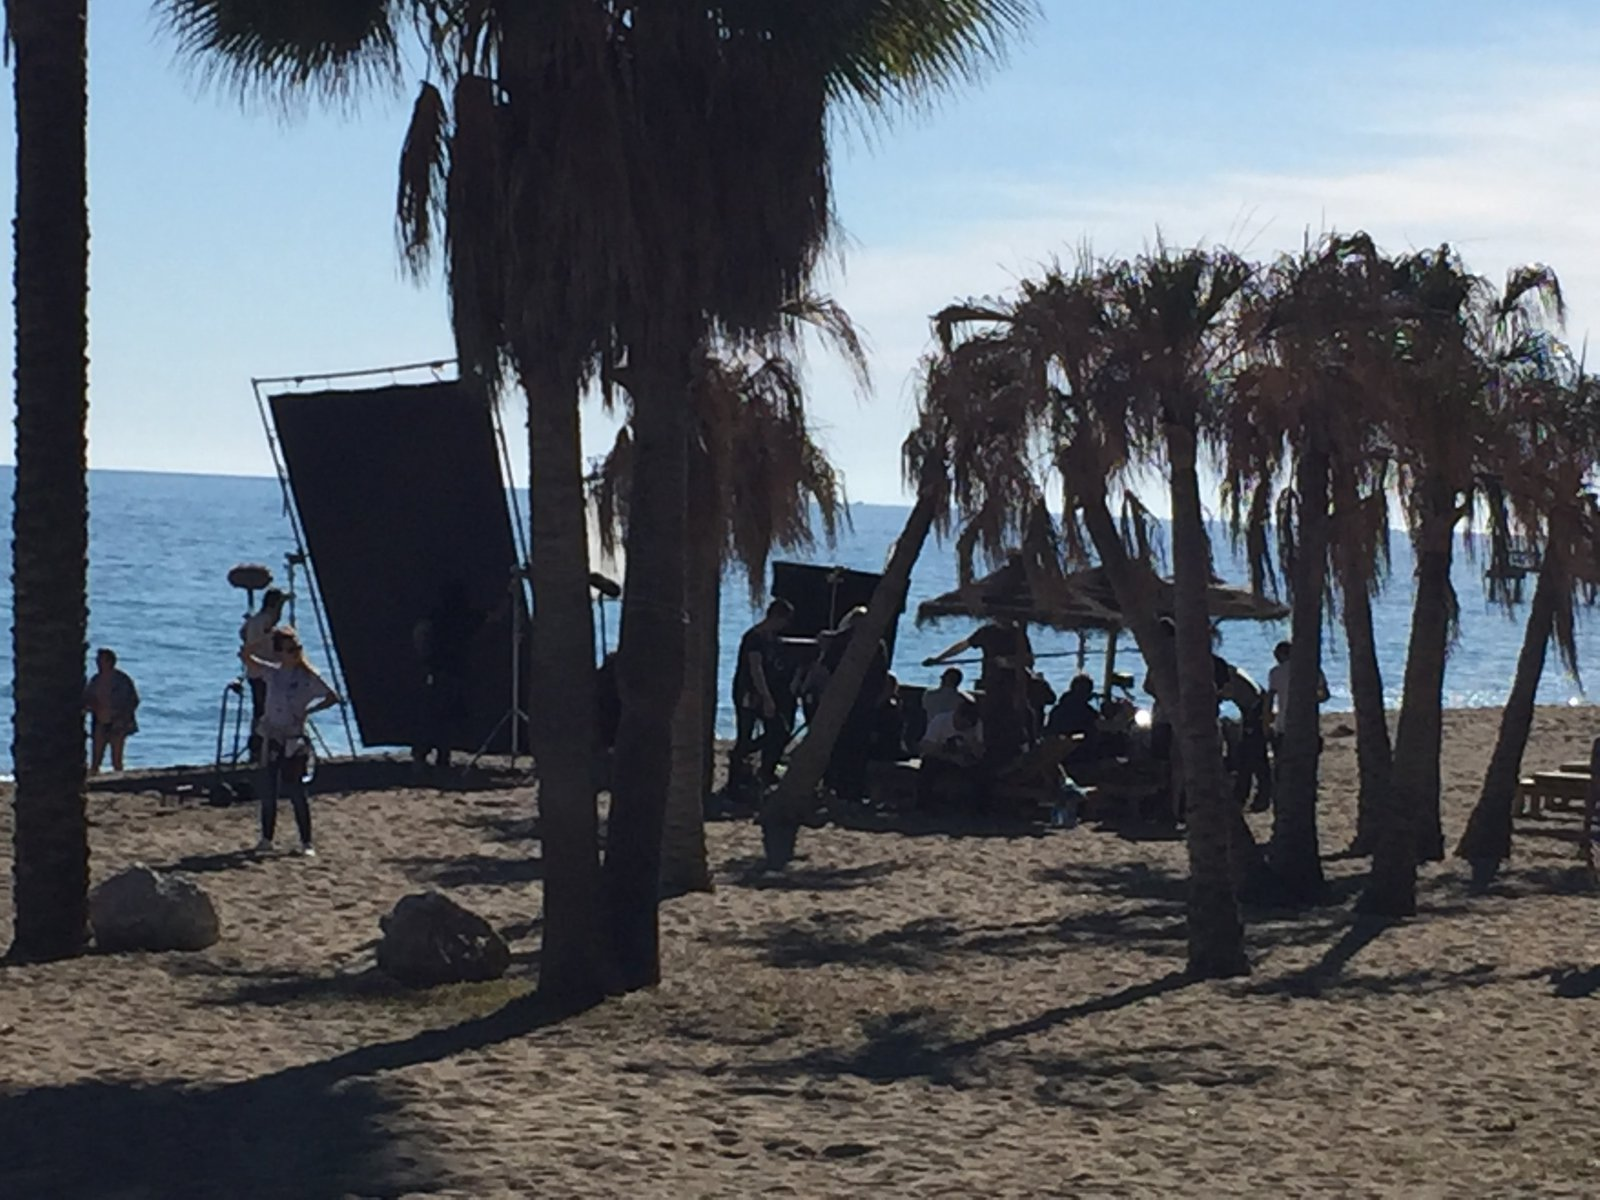 Advantages of filming in Marbella